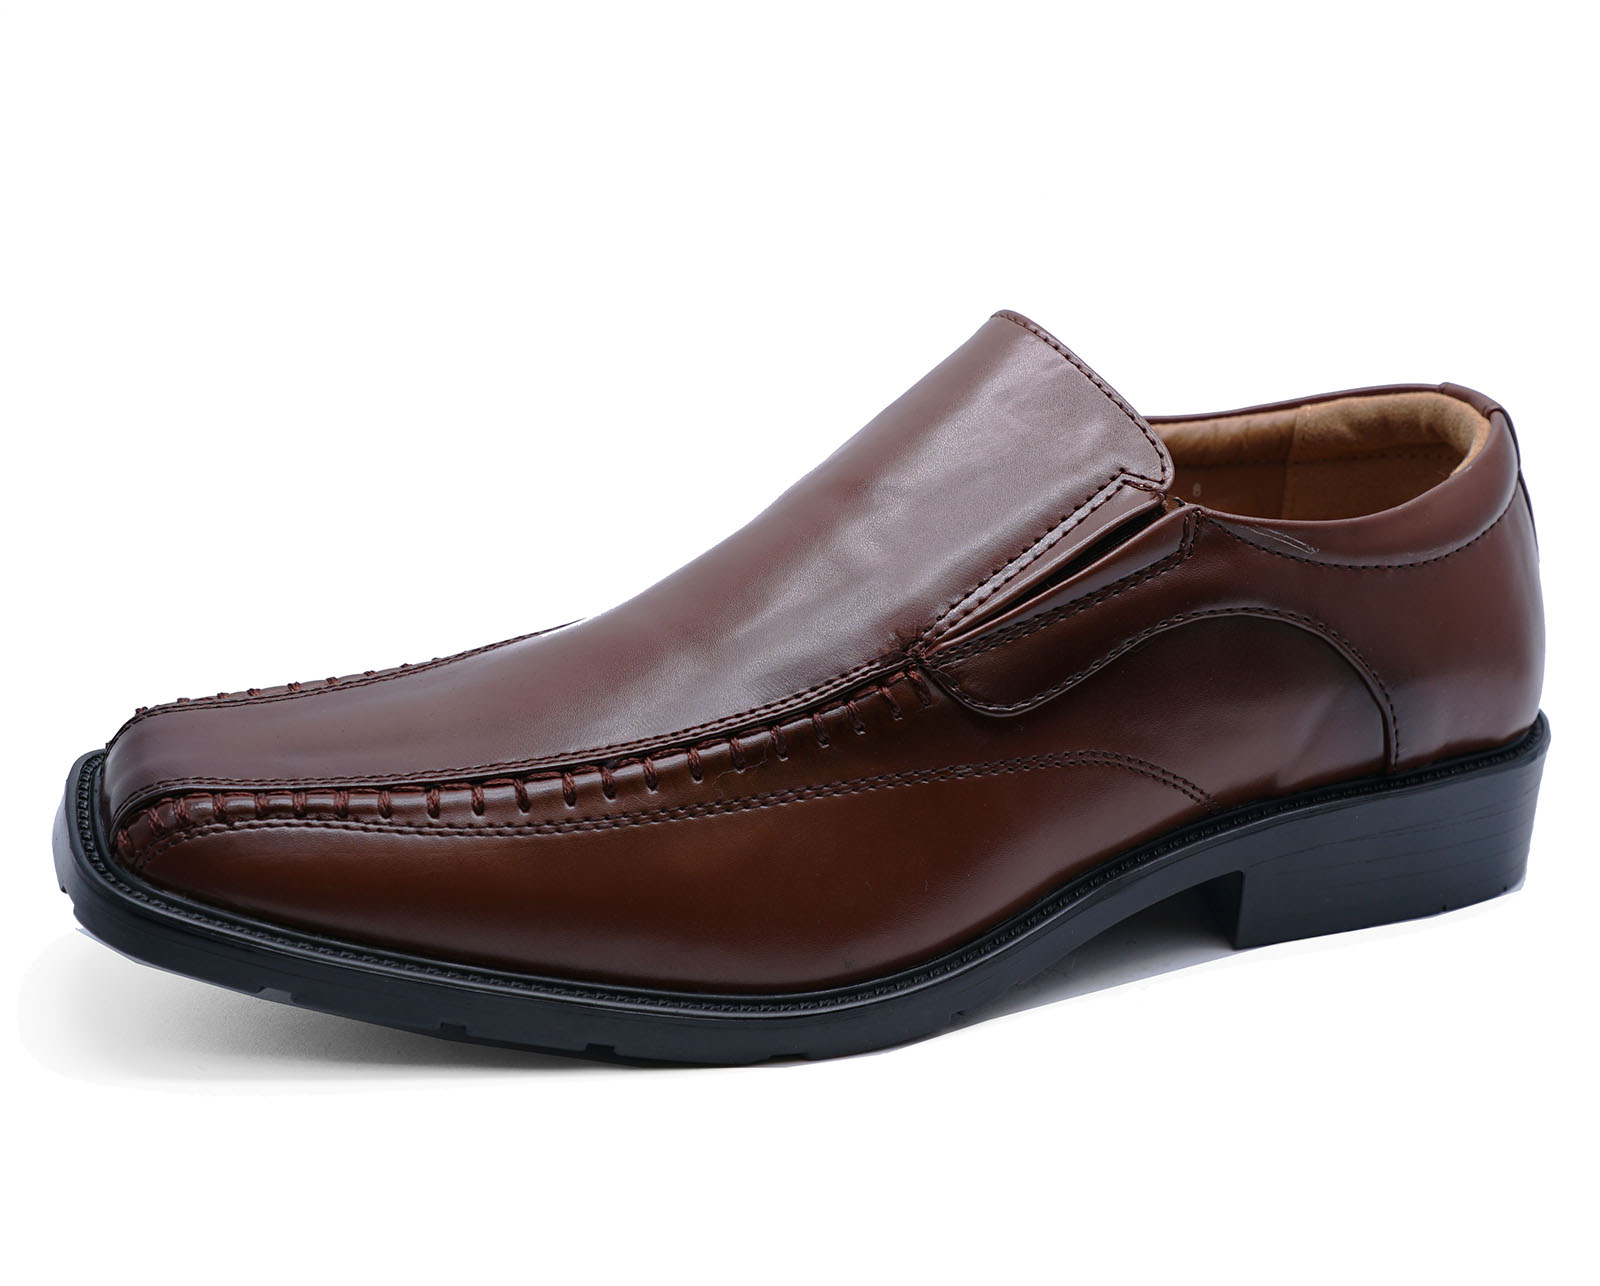 Homme Marron Slip-on Work Mariage Smart Mocassins Casual Formelles Chaussures UK 5-10